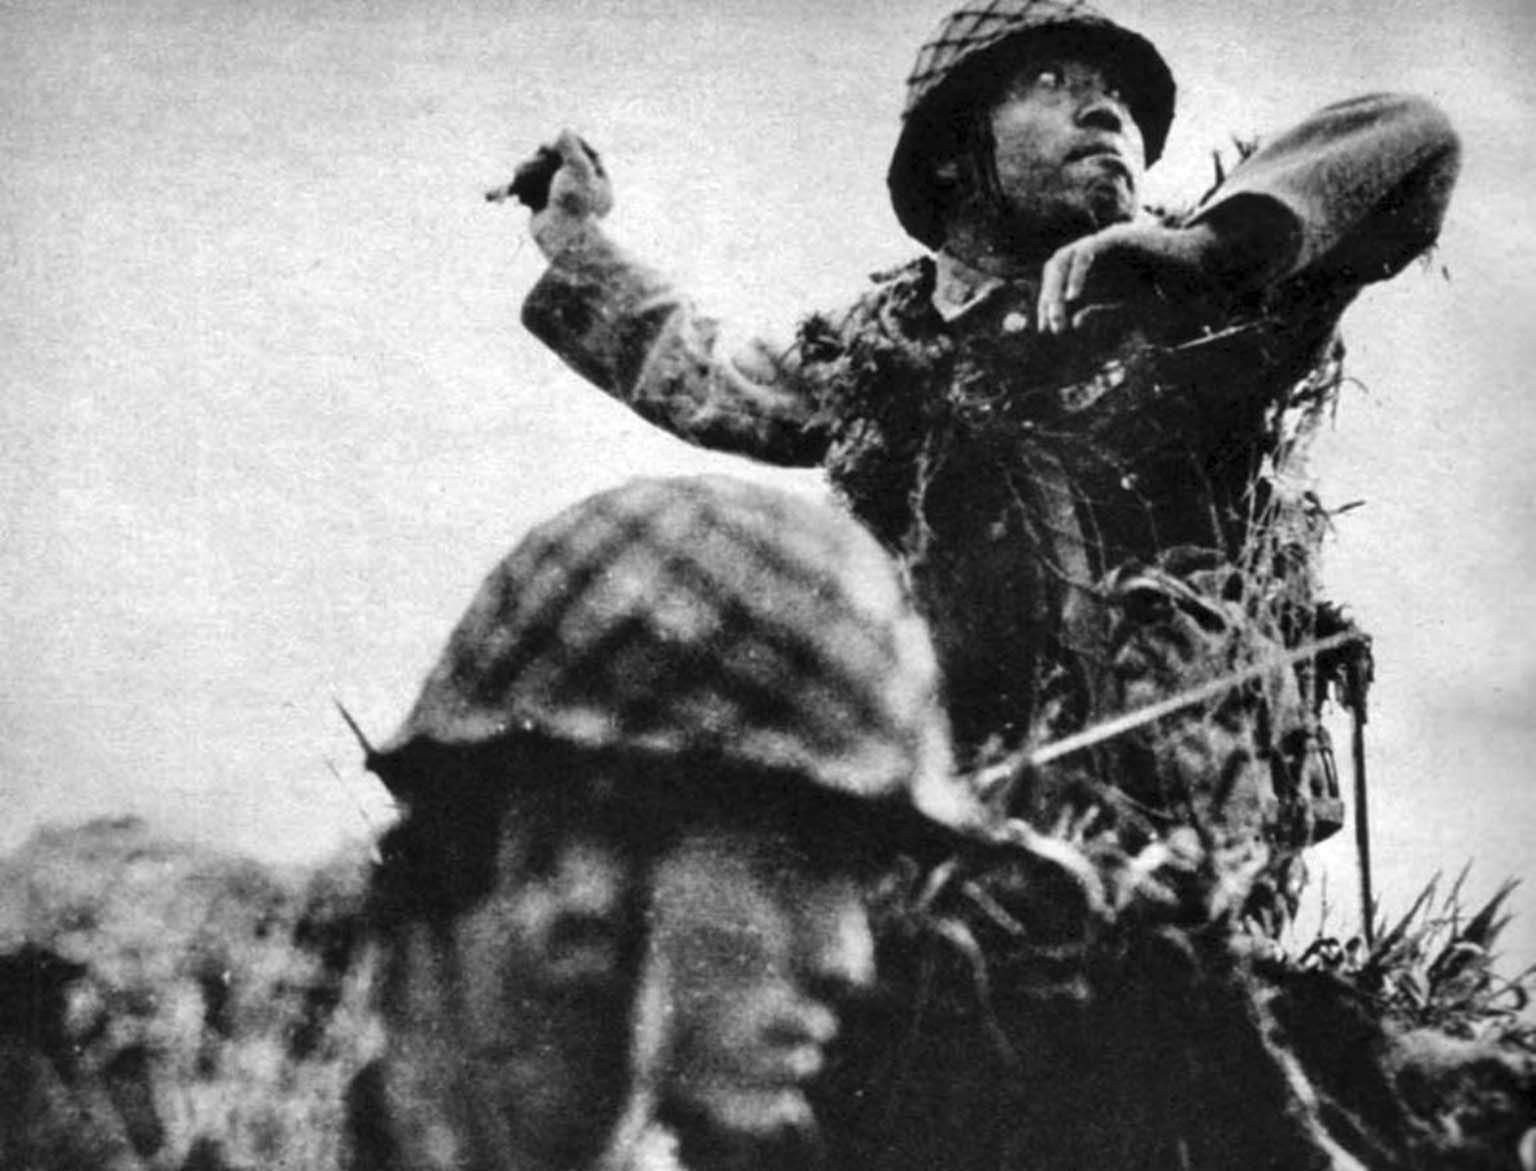 Japanese soldier throws a hand grenade in the Battle for Guadalcanal